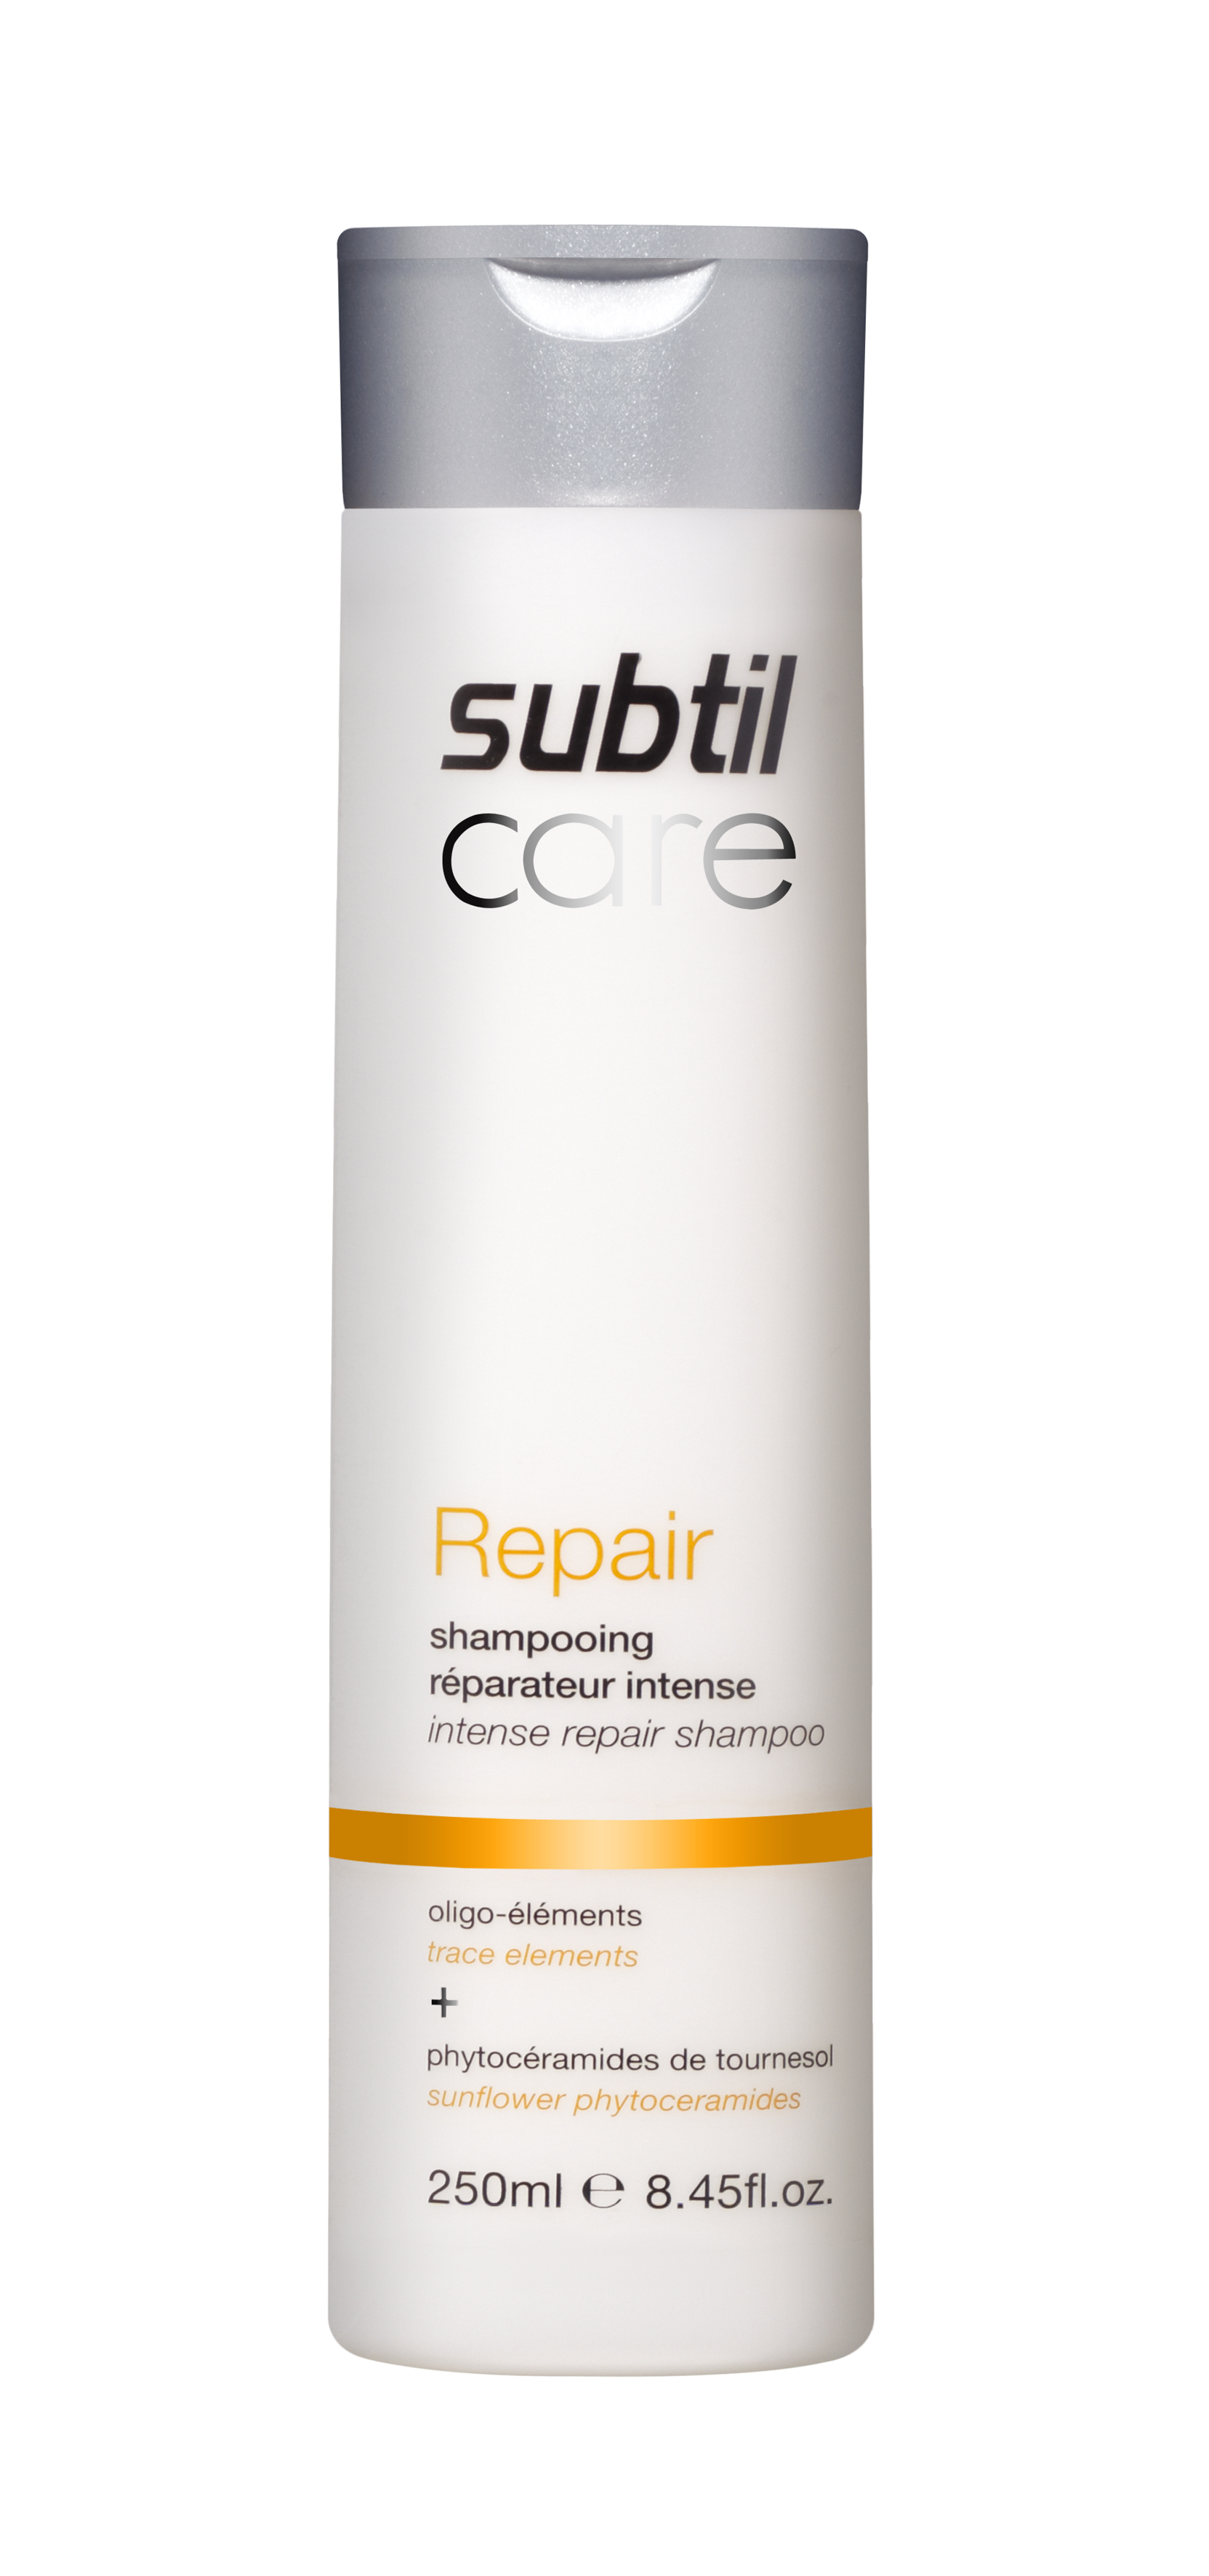 Subtil Care Repair shampooing réparateur intense250 ml